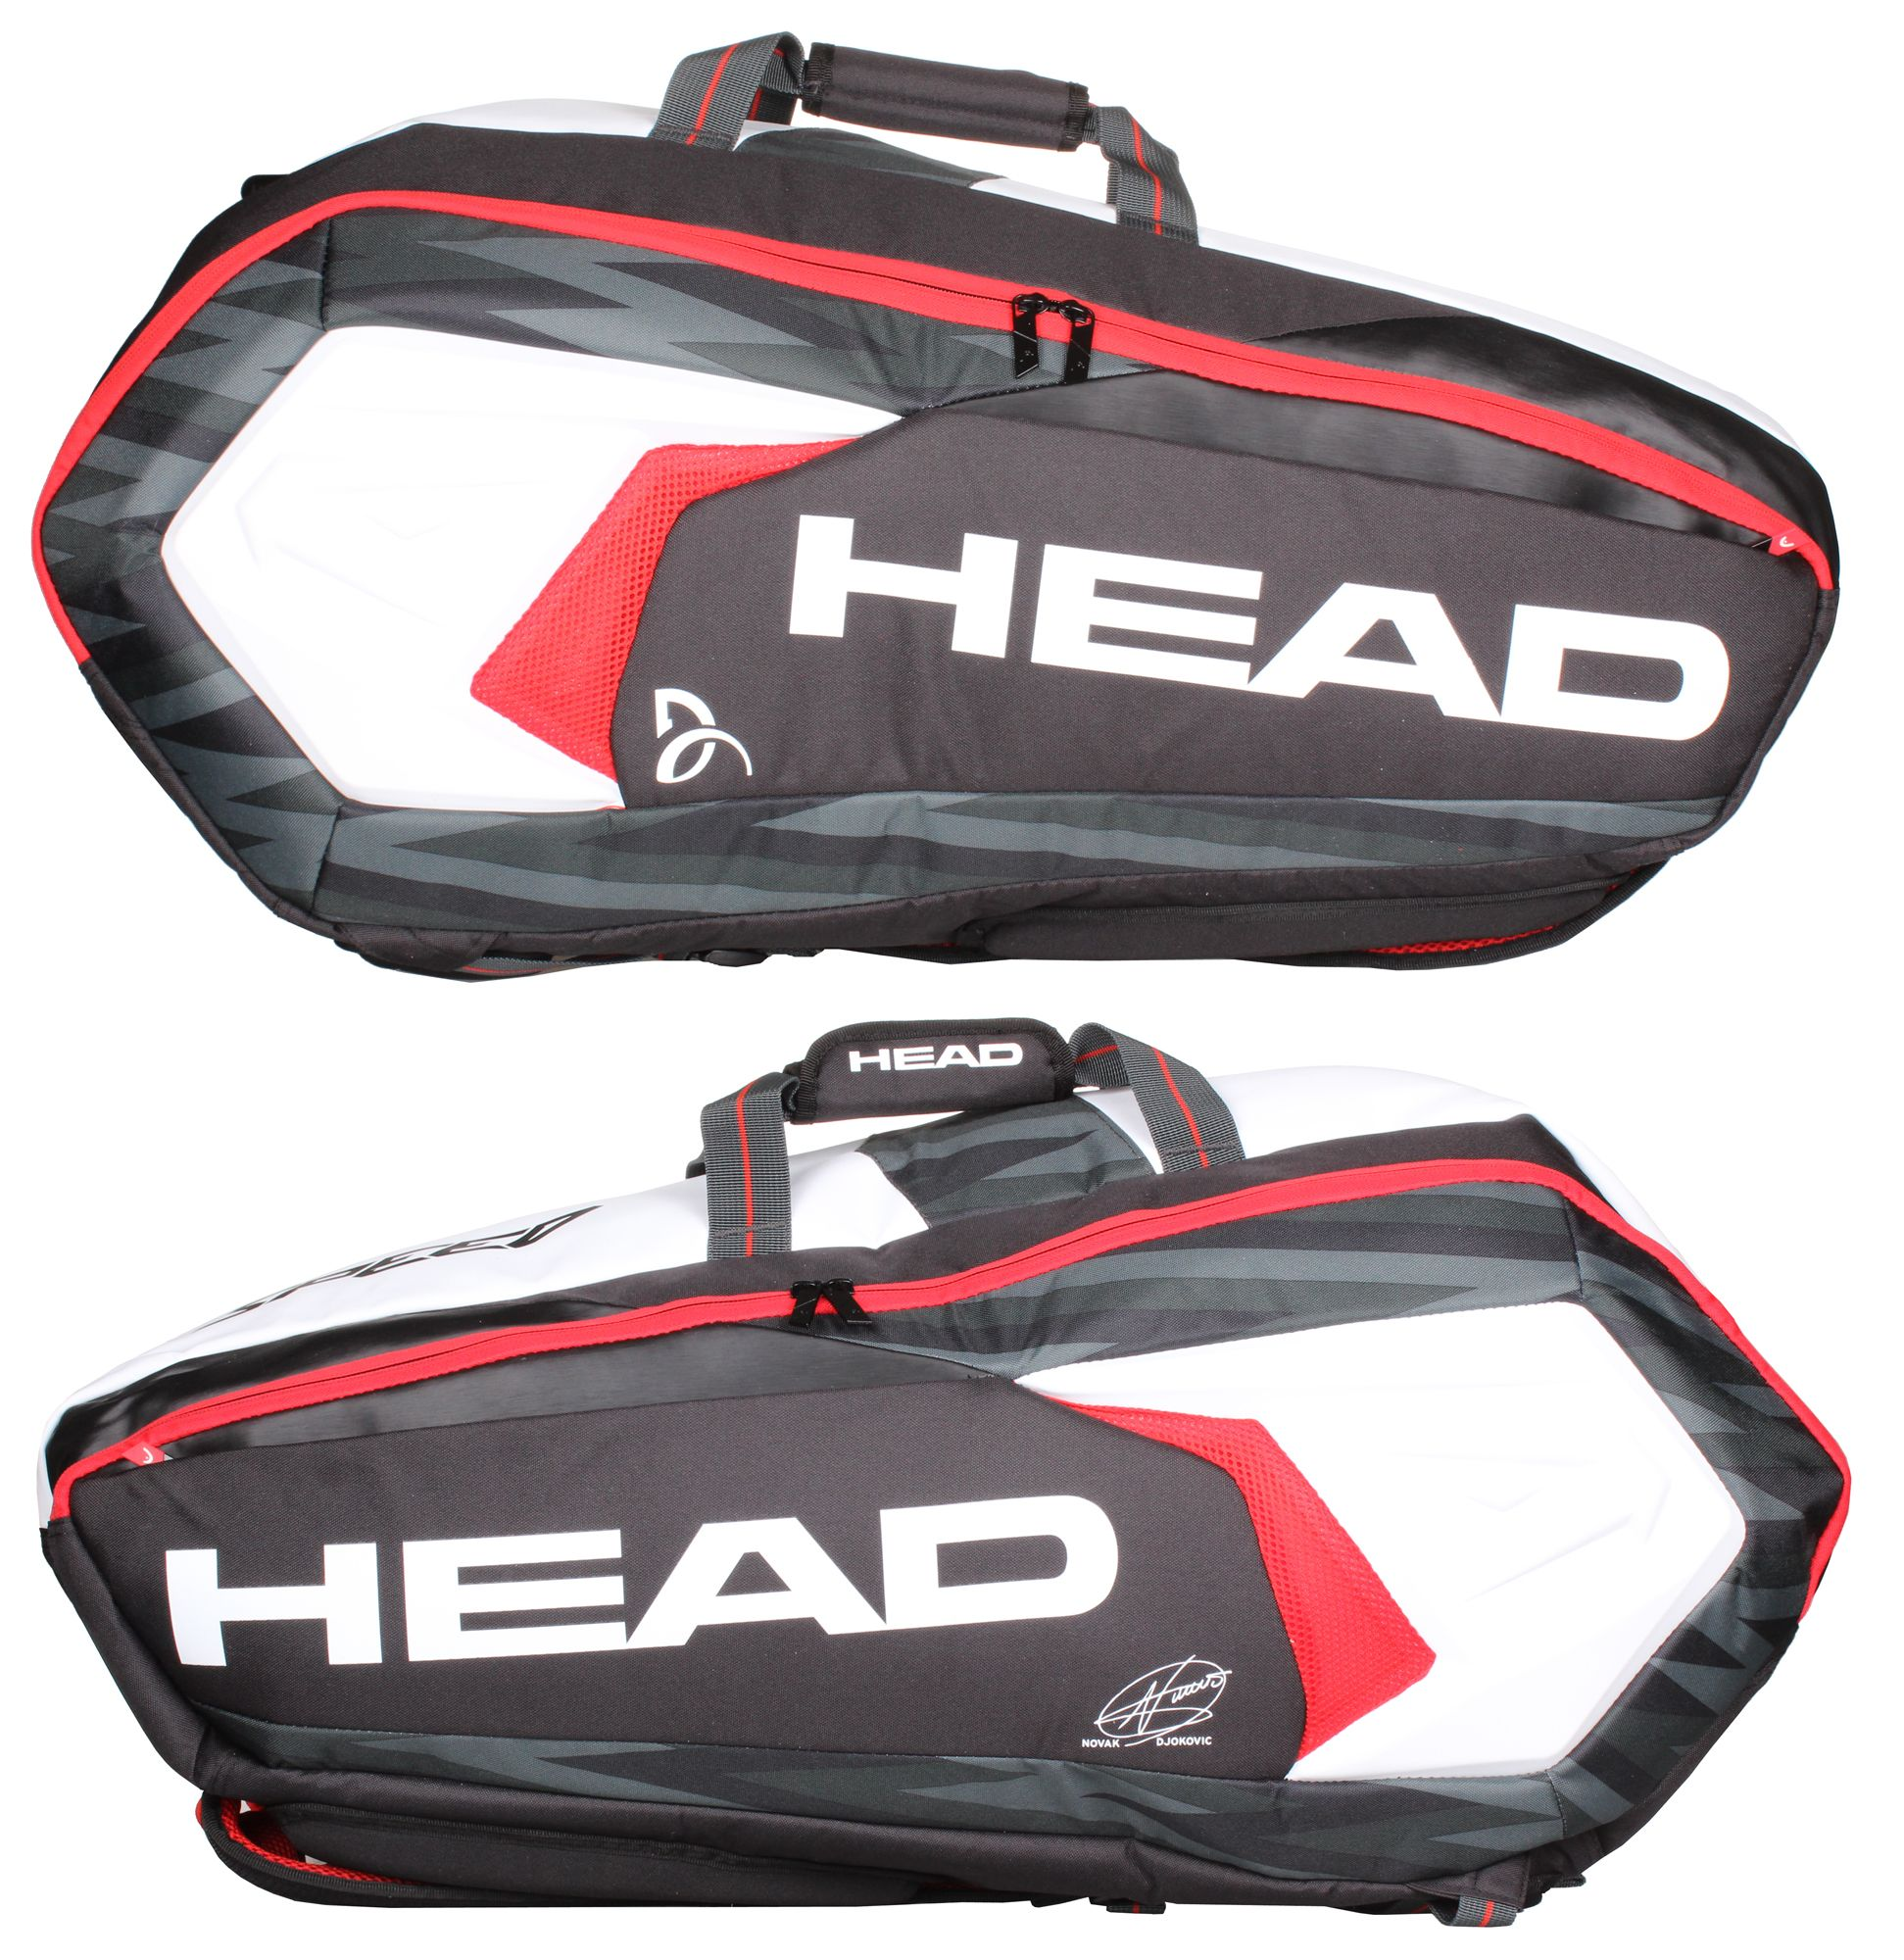 Finding The Comfortable Tennis Racquet Bag In 2020 Tennis Racket Pro Racquet Bag Tennis Racquet Bag Tennis Bags